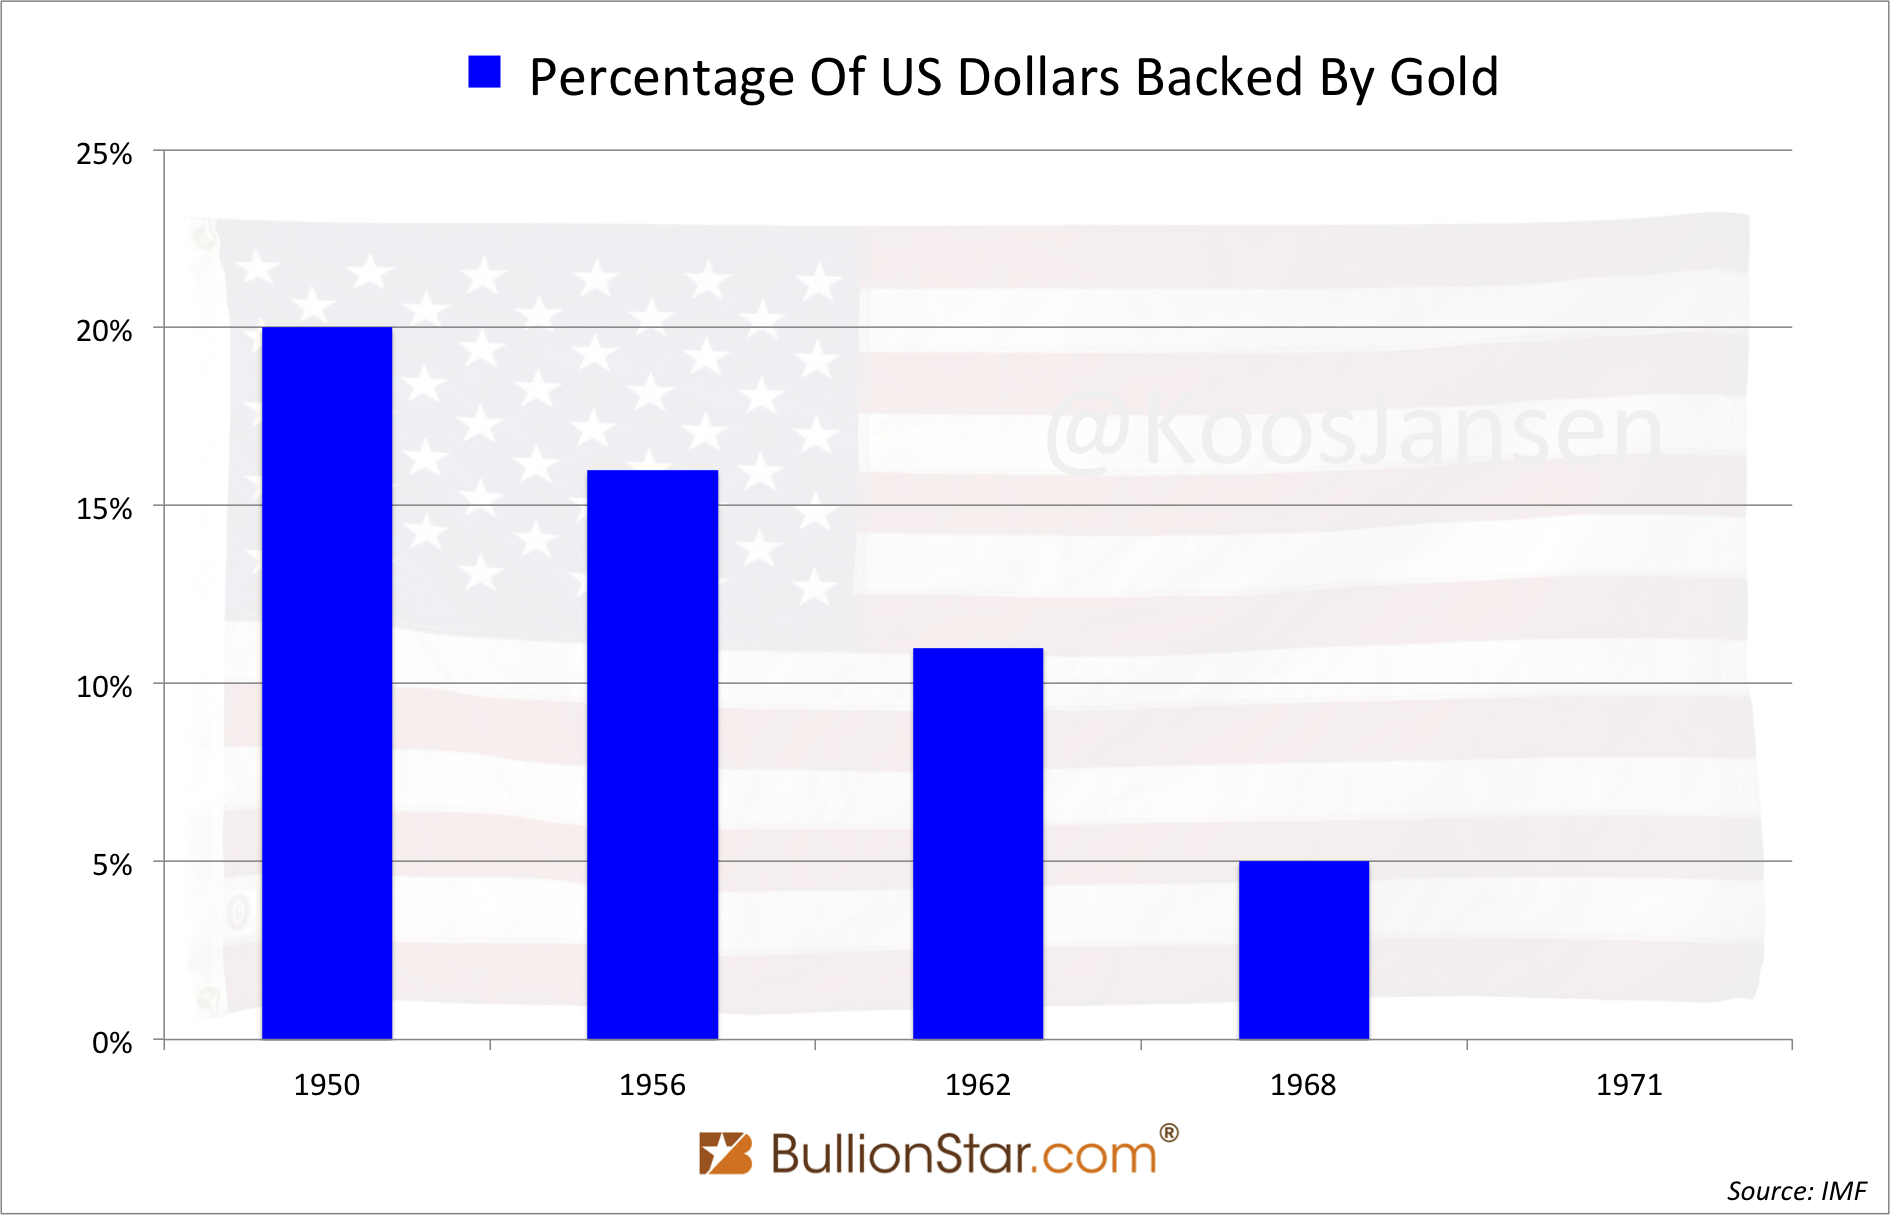 Dollars backed by gold 1971